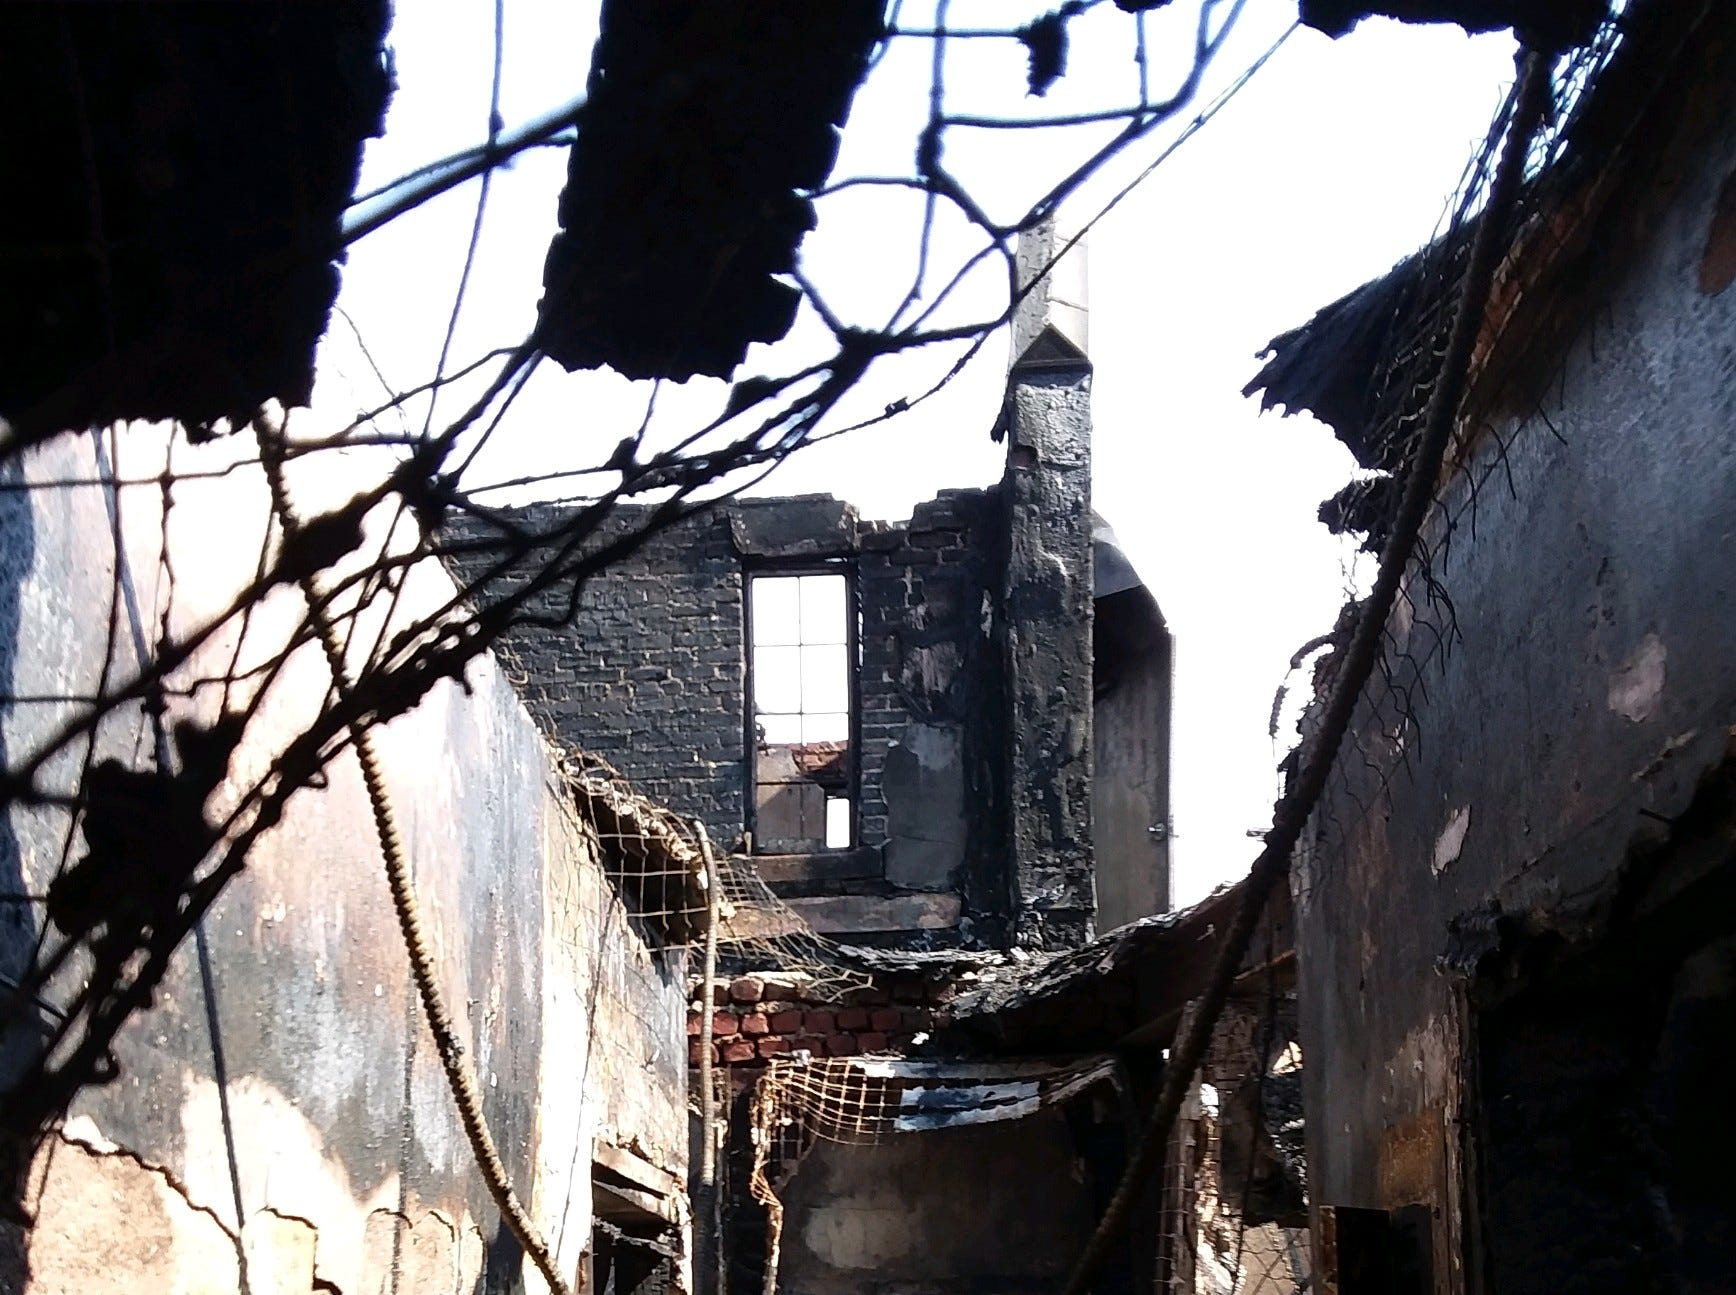 Inside the 15 Parkview Ave. fire in Yonkers.